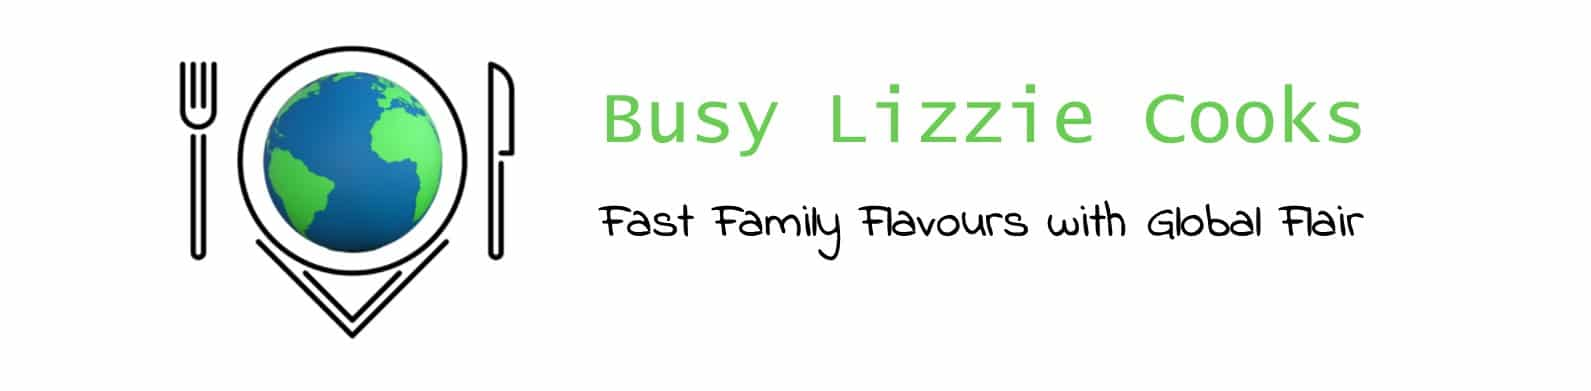 Busy Lizzie Cooks- Fast Family Flavours with Global Flair